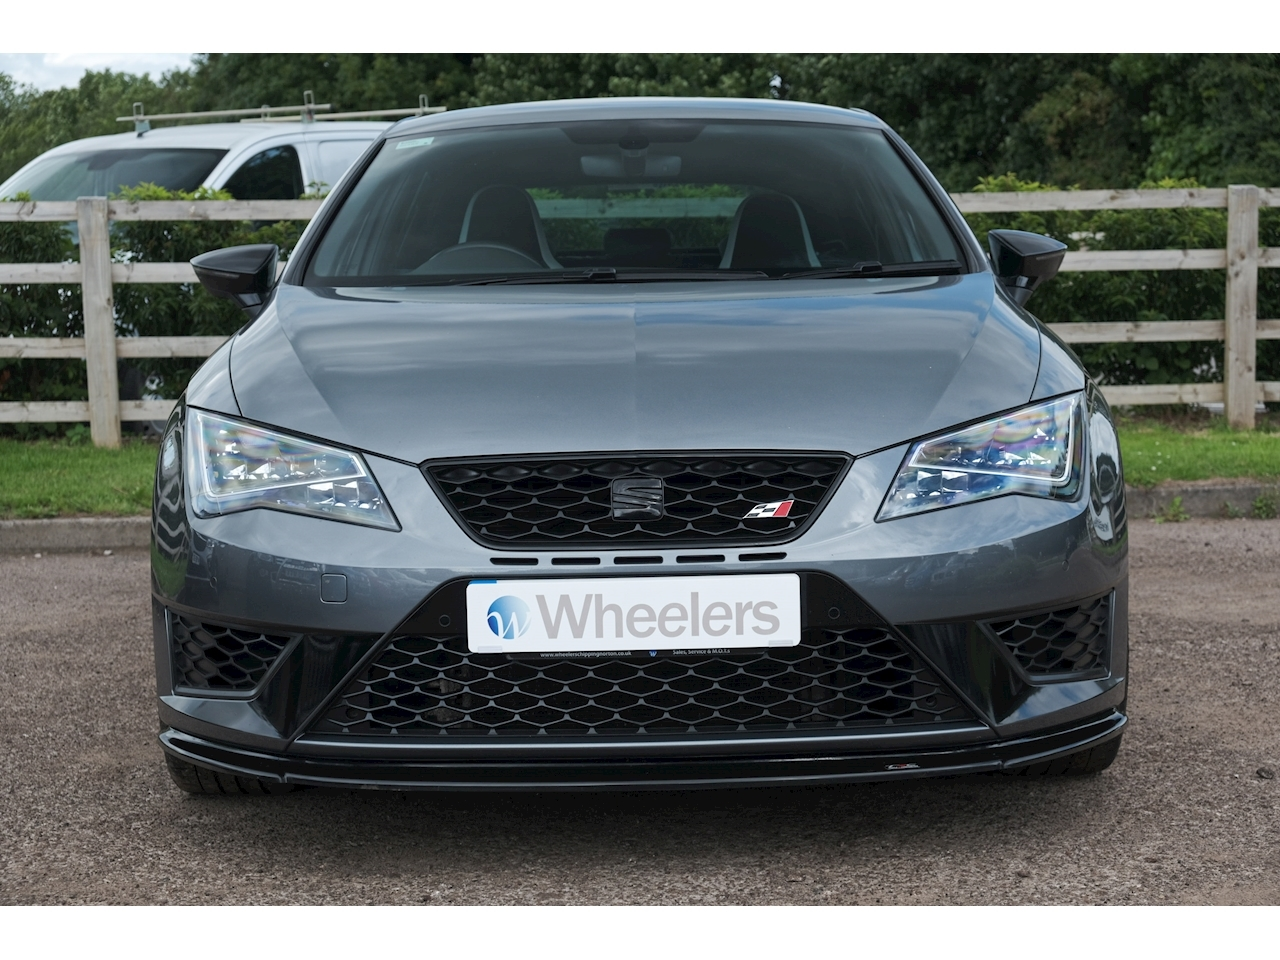 SEAT Leon Tsi Cupra Black 2.0 5dr Hatchback Manual Petrol